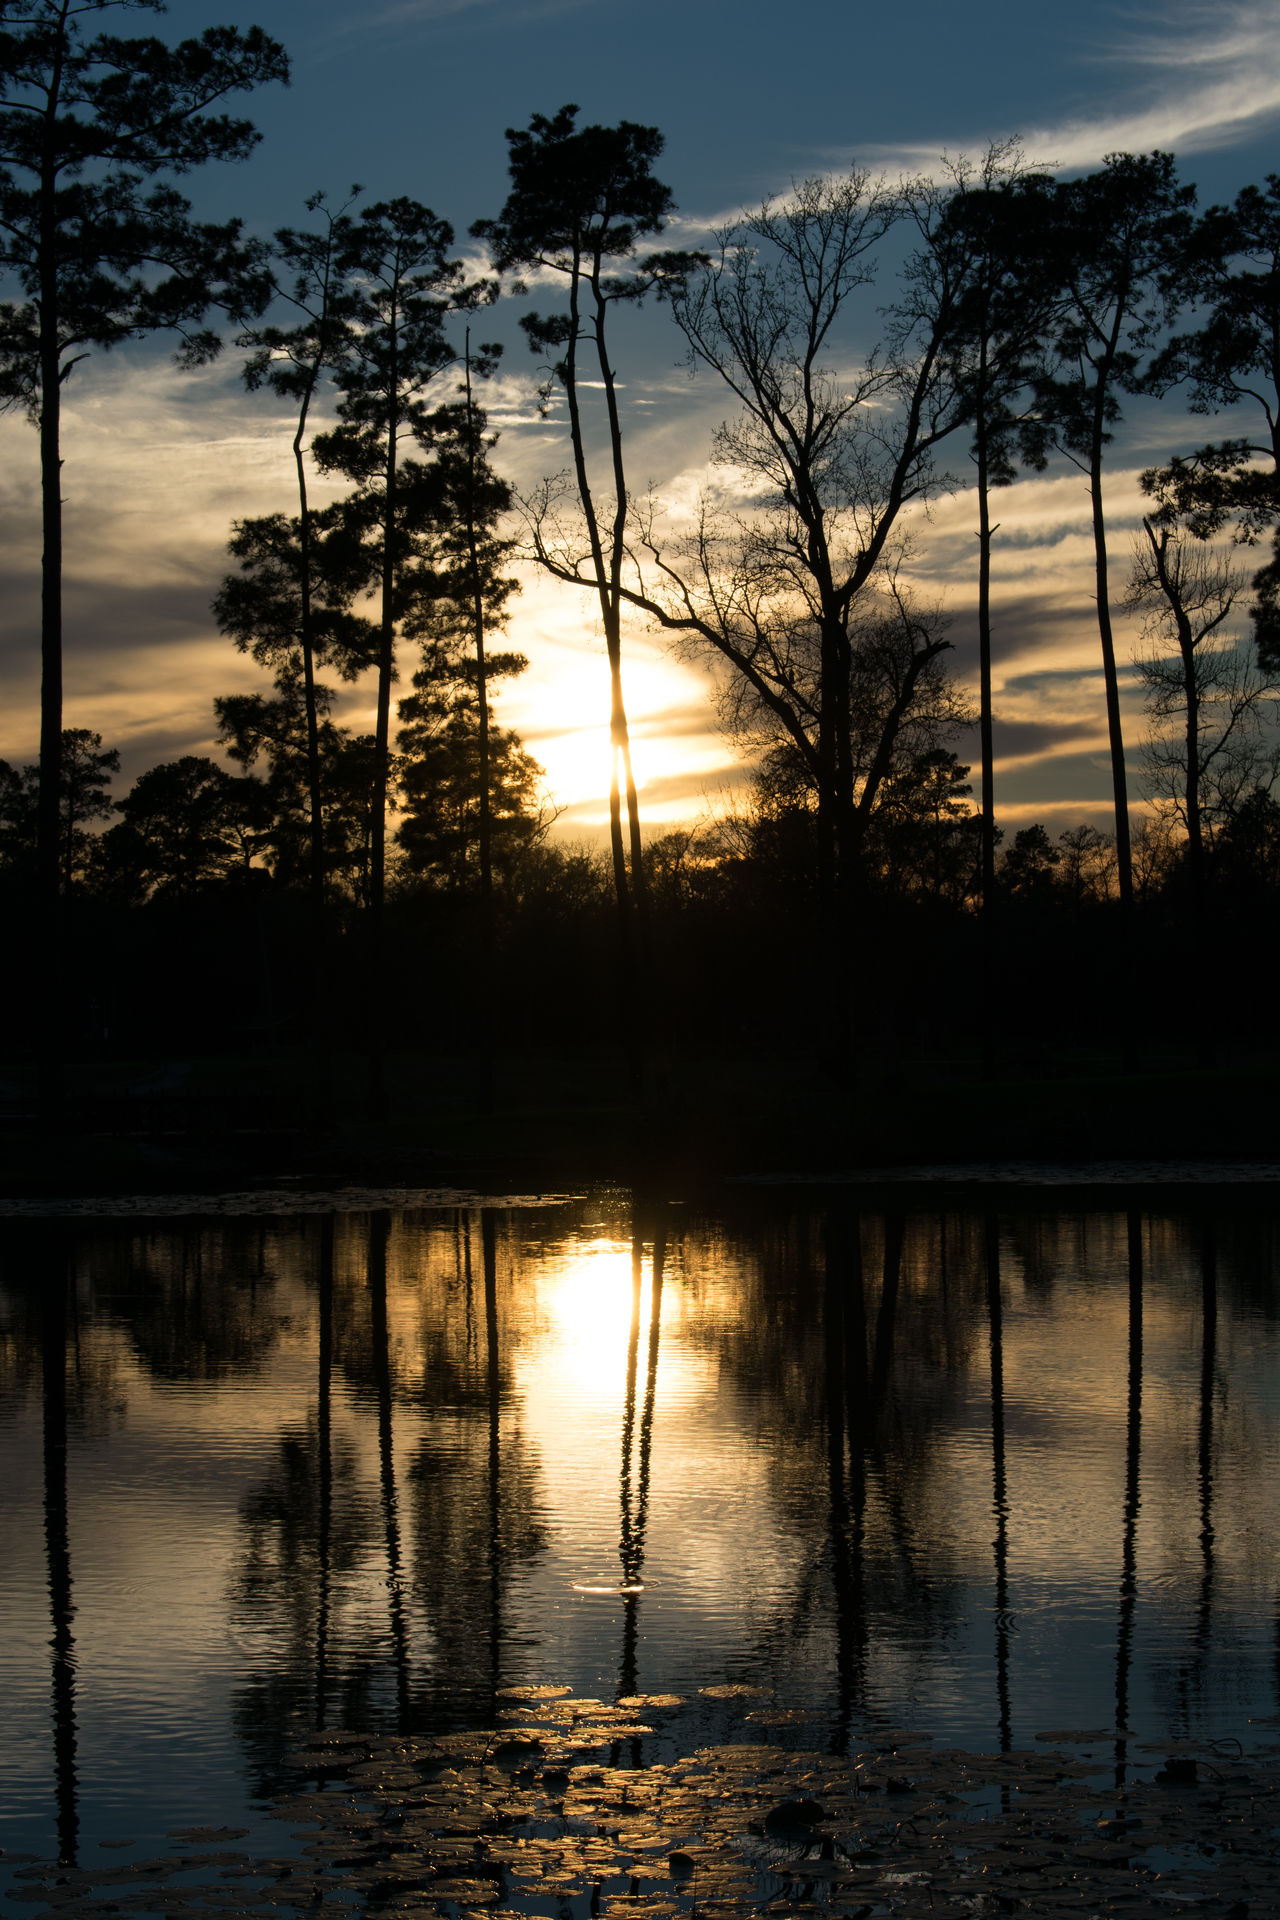 Backgrounds Beauty In Nature Day Lake Nature No People Outdoors Reflection Silhouette Sky Sun Sunset Tranquility Tree Vacations Water